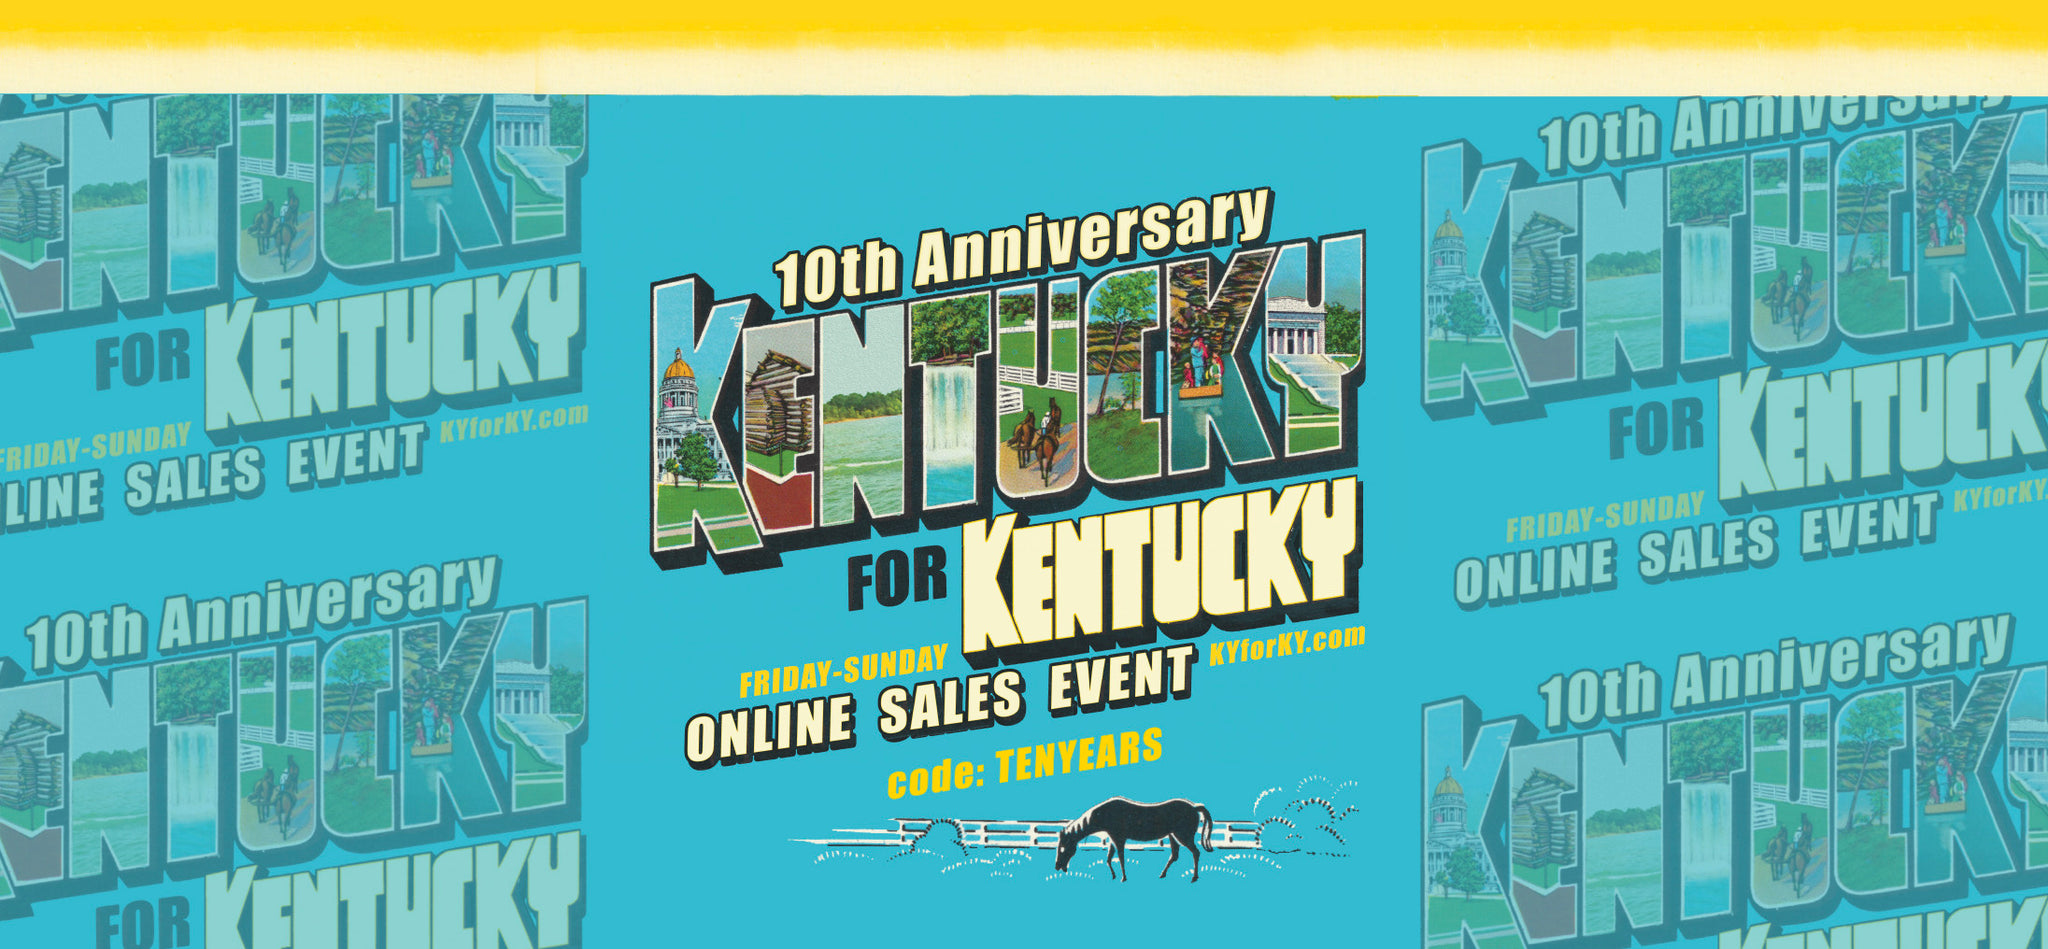 10TH ANNIVERSARY ONLINE SALES EVENT!!!